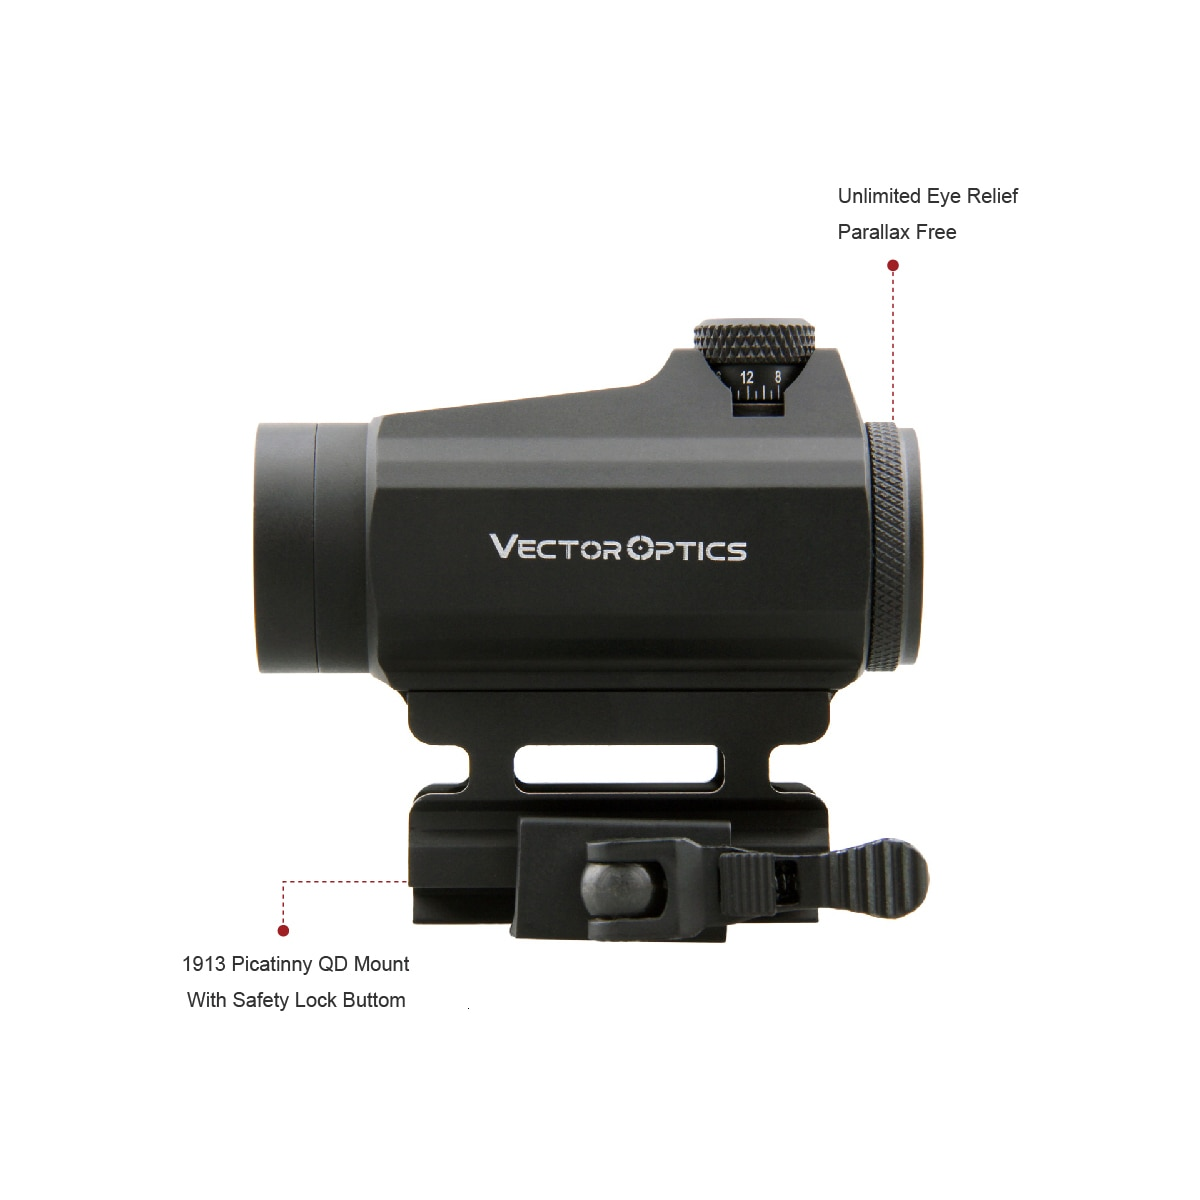 Vector Optics Maverick GenII 1x22 Red Dot Scope Sight Hunting Tactical Uncapped Turret QD Mount For Real Firearms .308 Airsoft enlarge